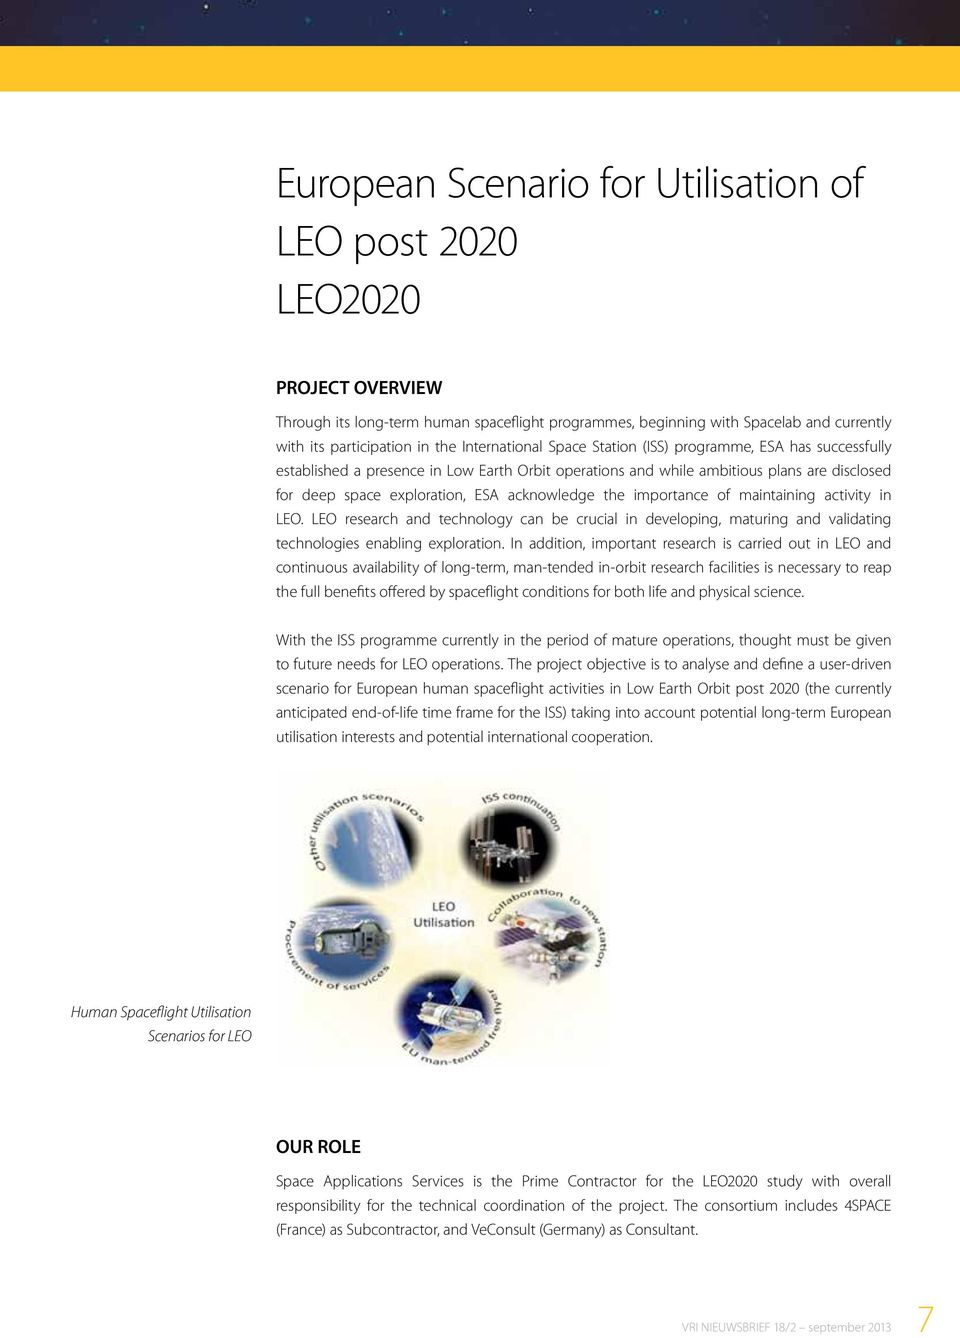 acknowledge the importance of maintaining activity in LEO. LEO research and technology can be crucial in developing, maturing and validating technologies enabling exploration.